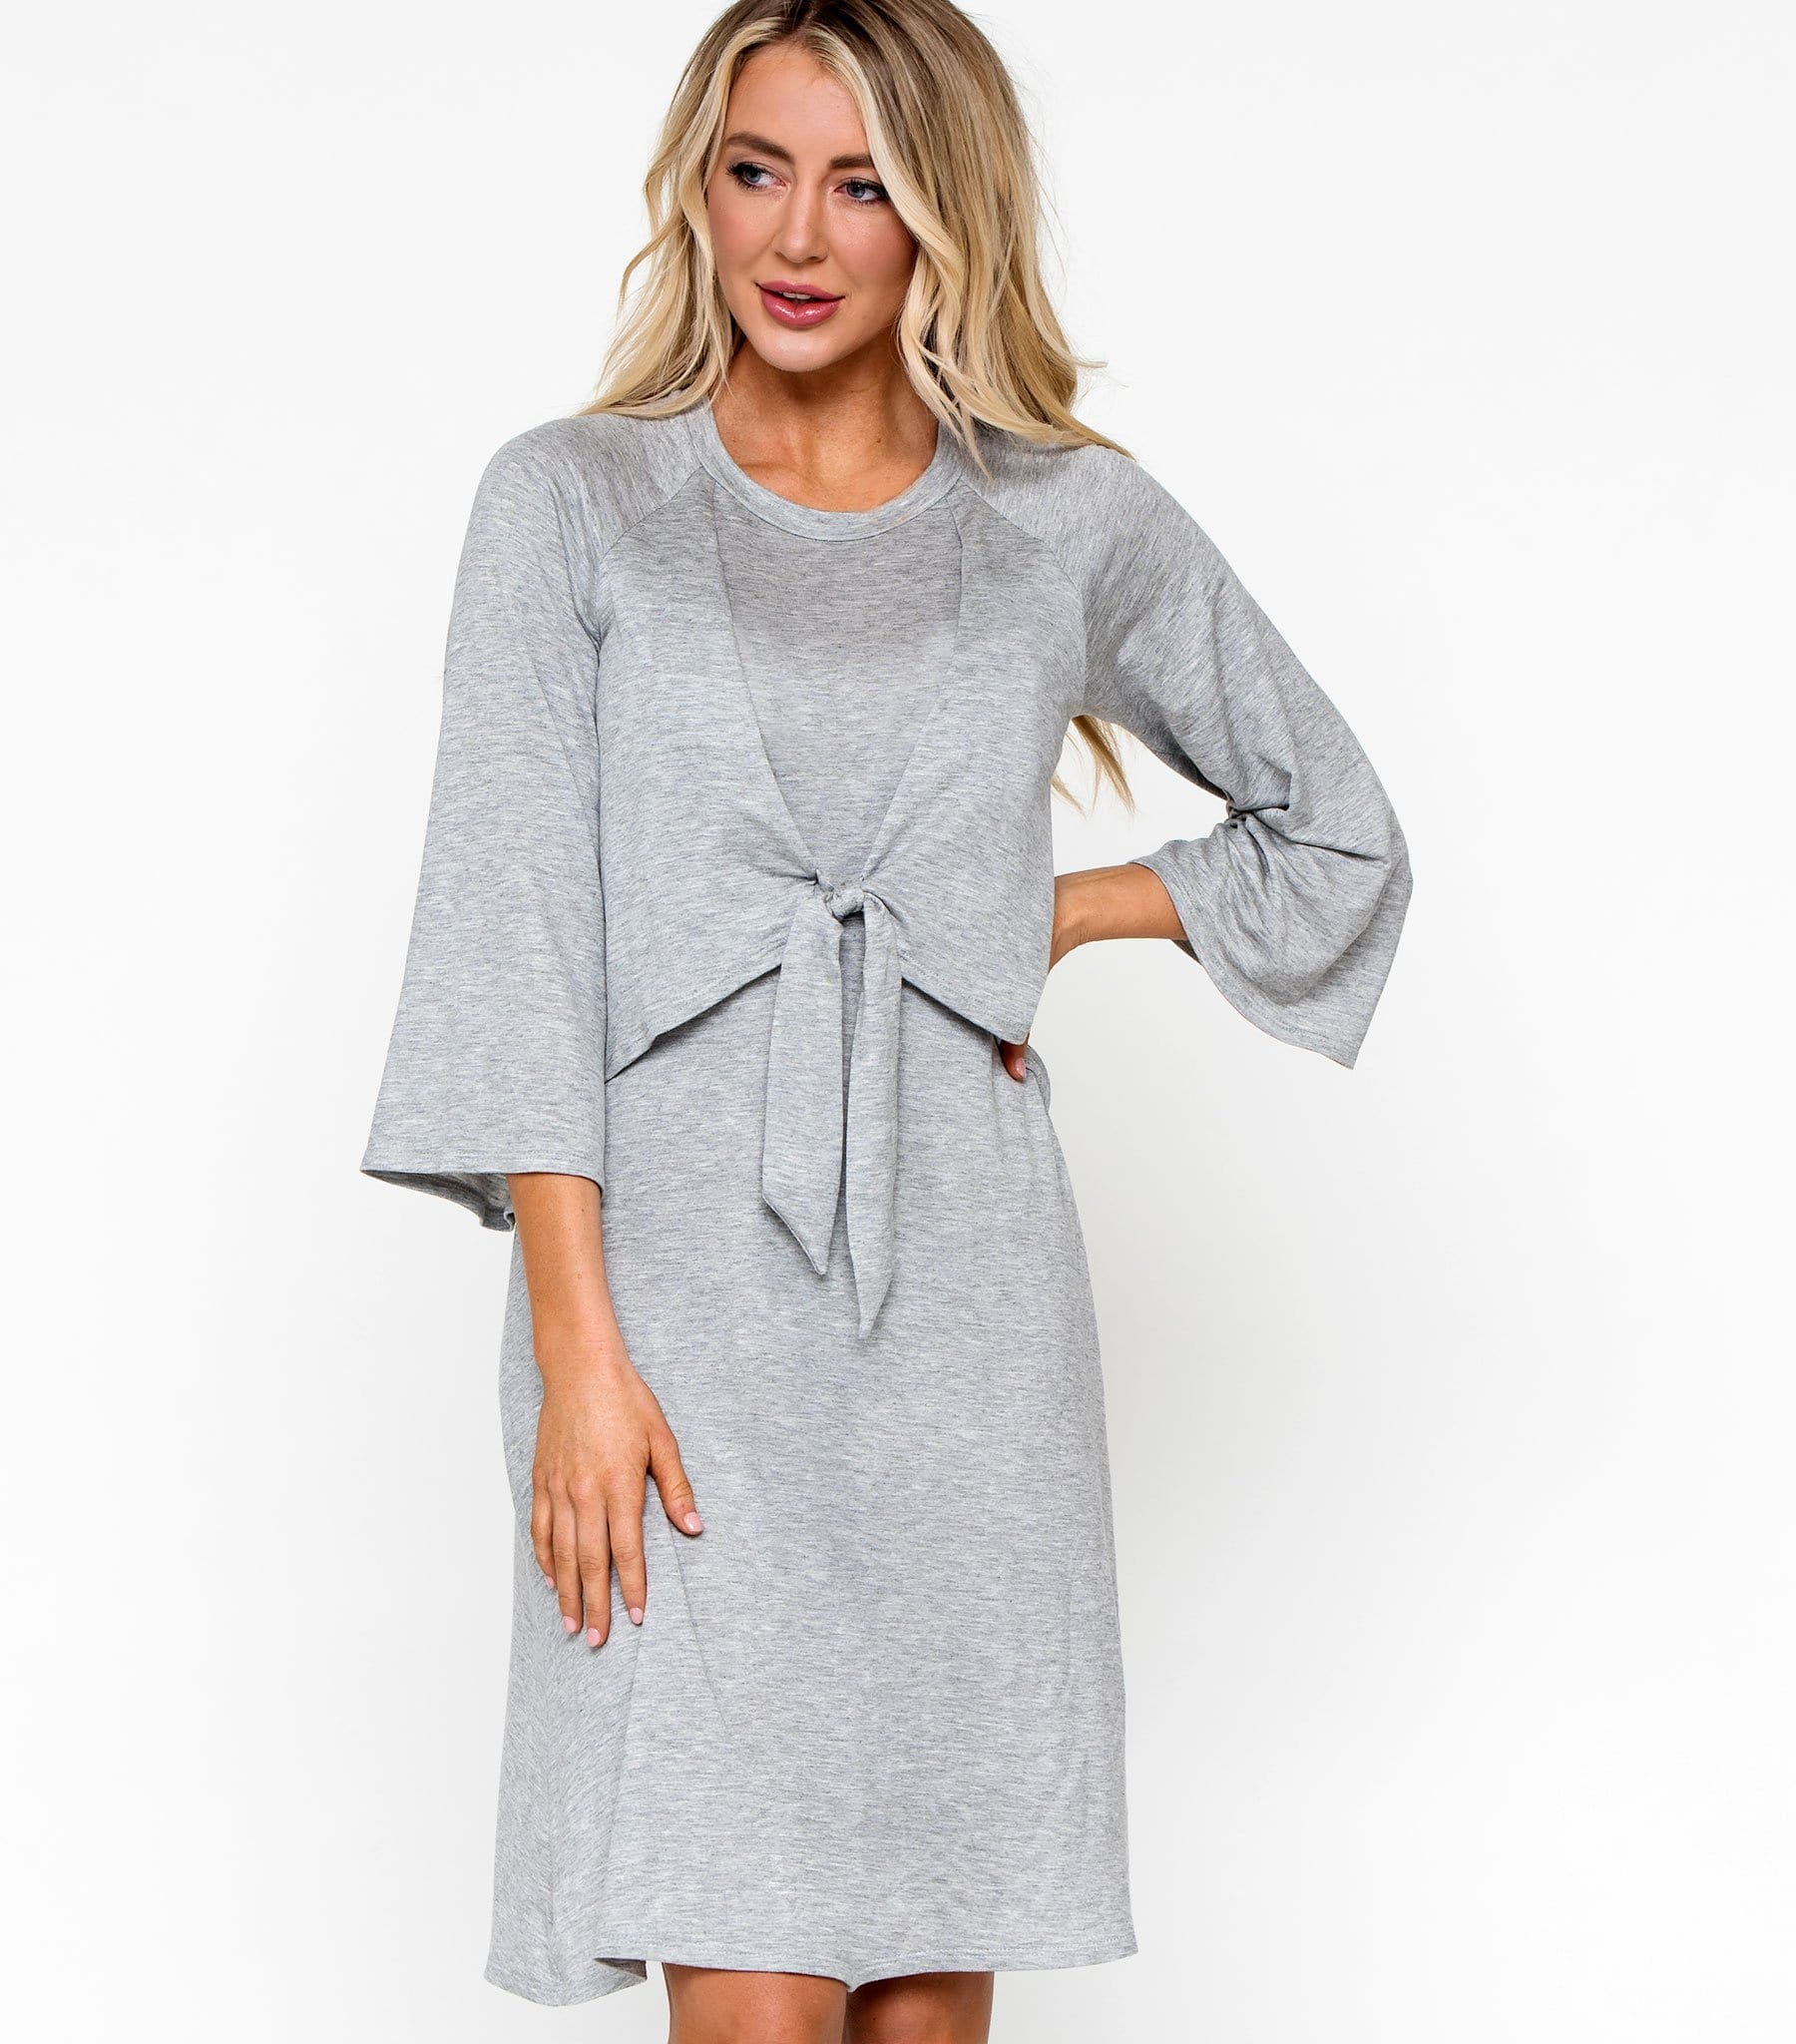 Knot Front Fleece Dress